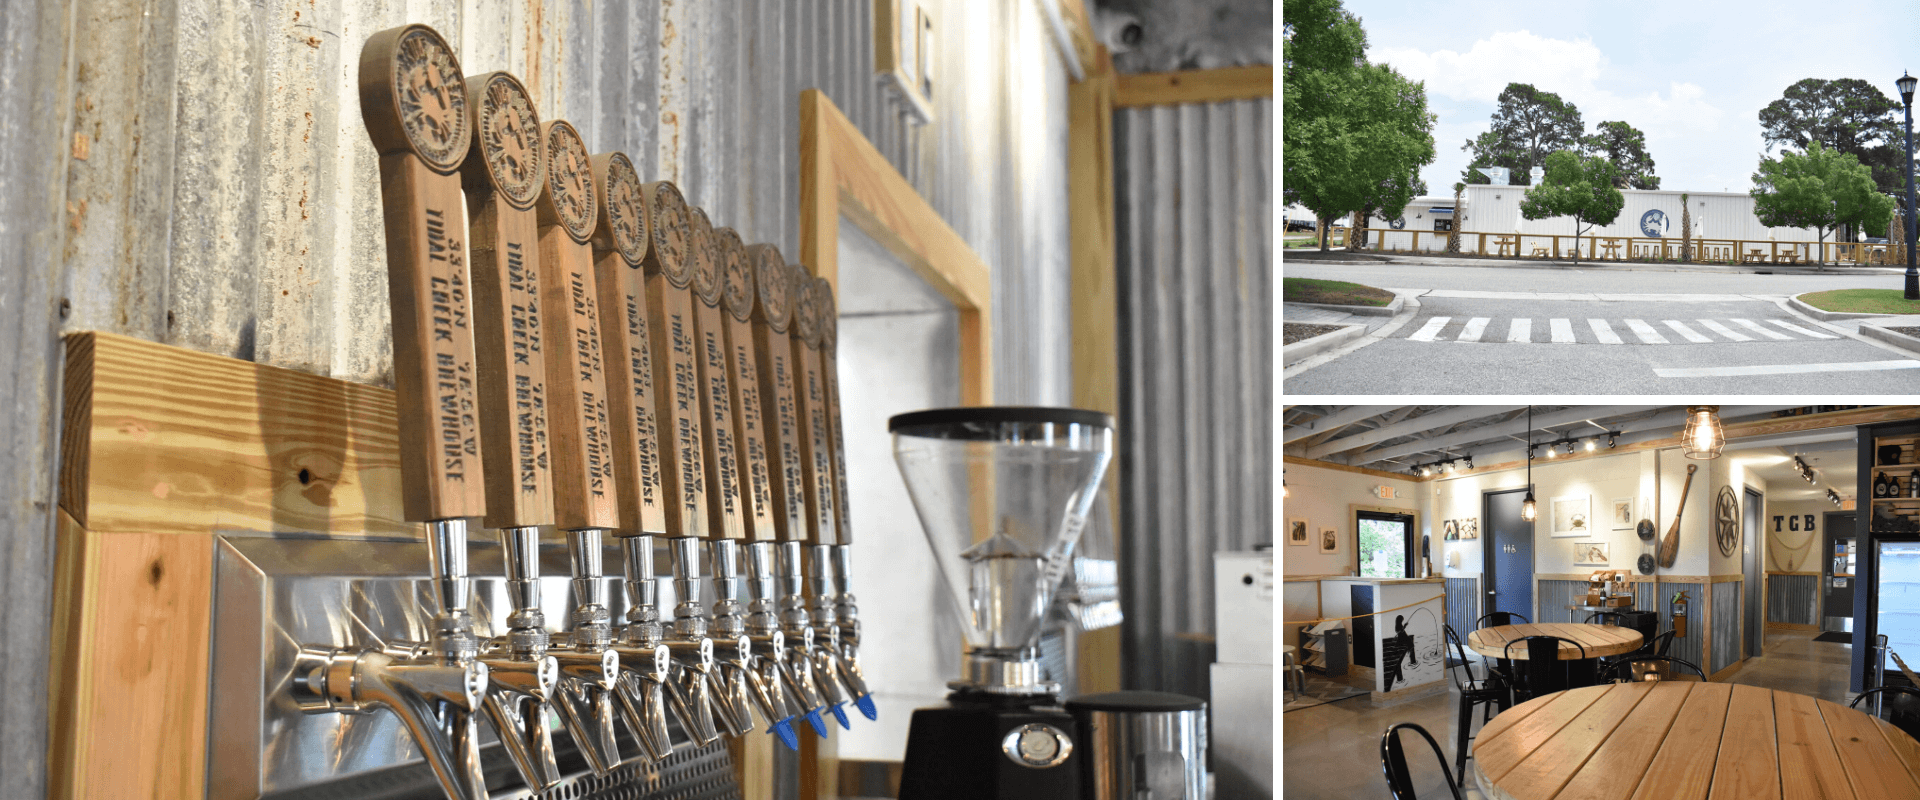 Tidal Creek Brewhouse inside and outside dining